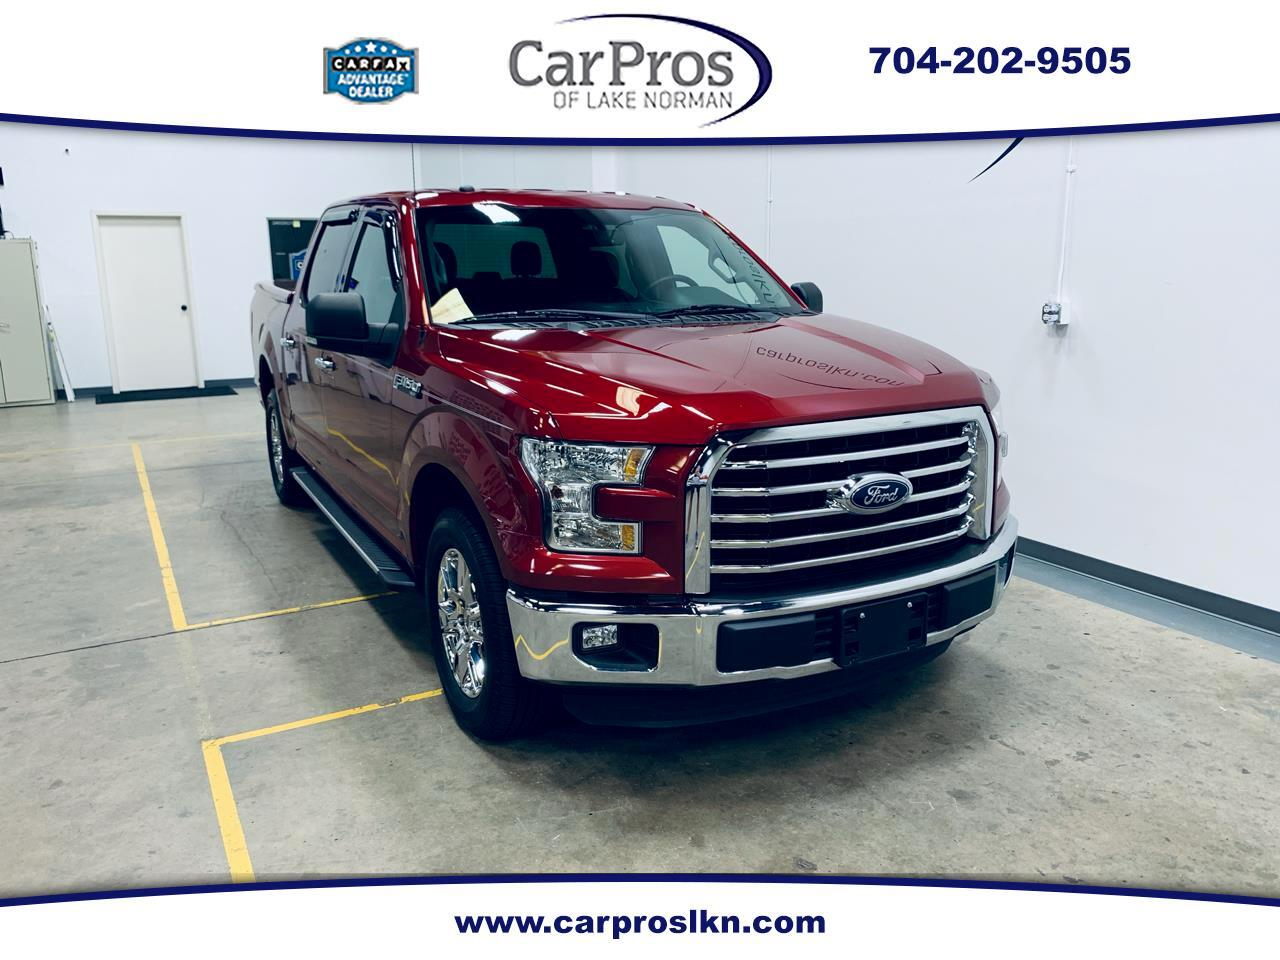 2016 Ford F-150 2wd SuperCrew XLT